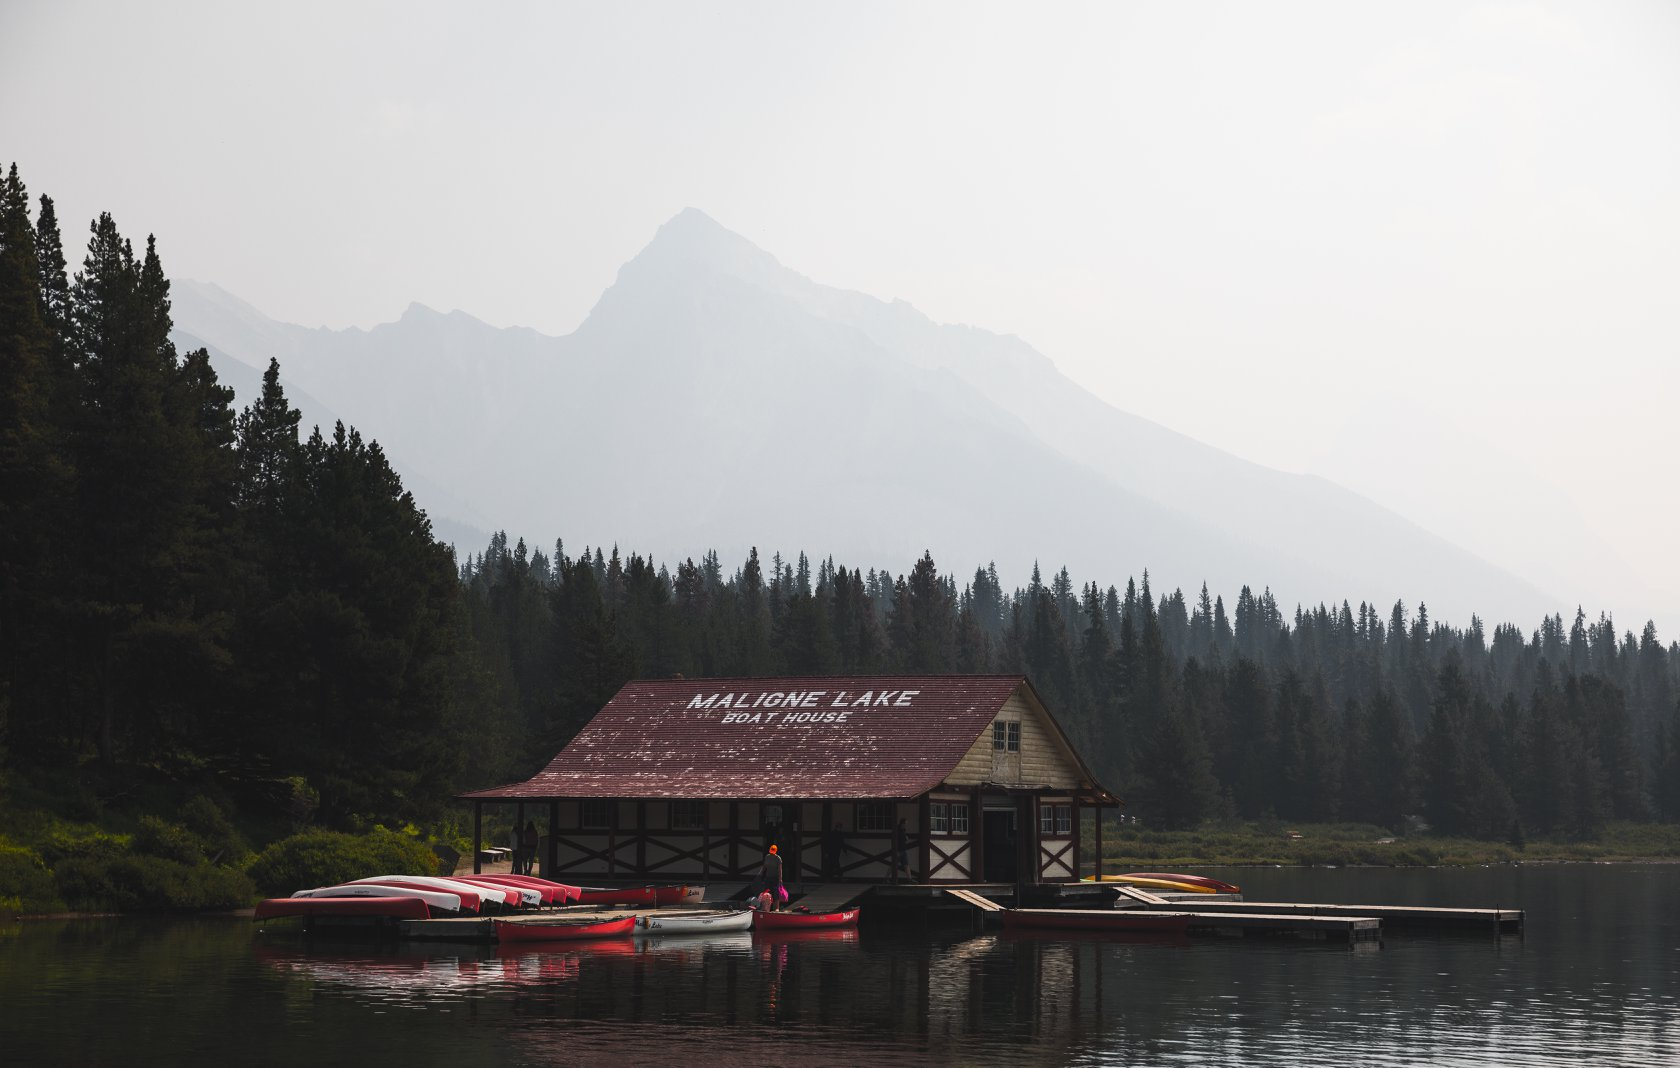 maligne lake Boat rental -  photo by alex iby